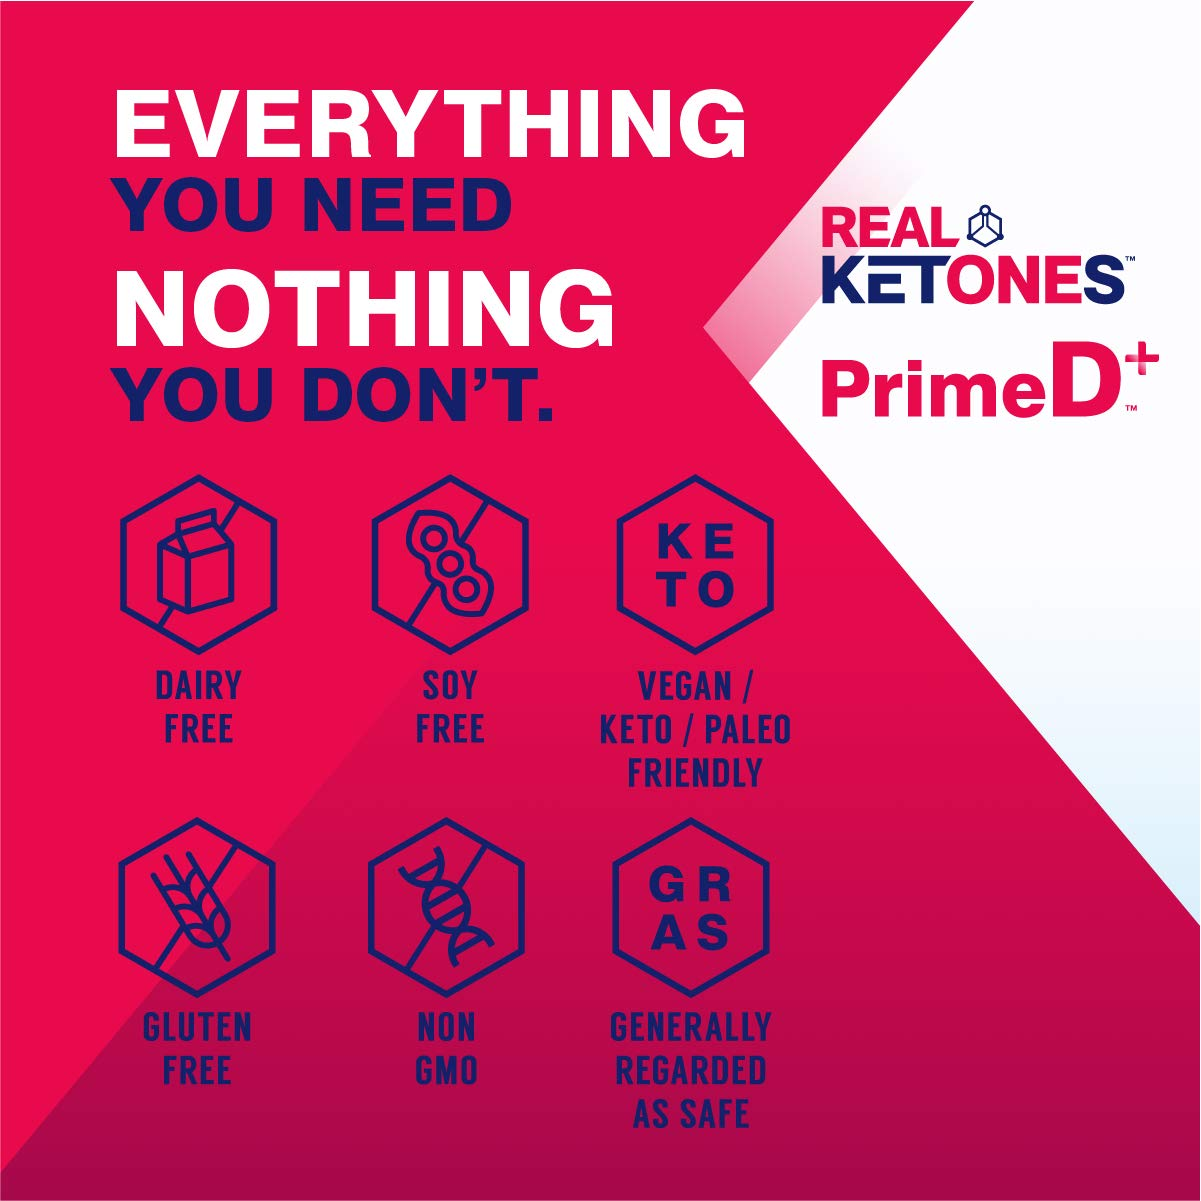 Real Ketones Prime D+ BHB (Beta-Hydroxybuterate) and MCT Exogenous Ketone Powder Supports Ketogenic Diet, Energy Boost, Mental Clarity (Orange Blast) (56 Serving) by KEGENIX (Image #7)